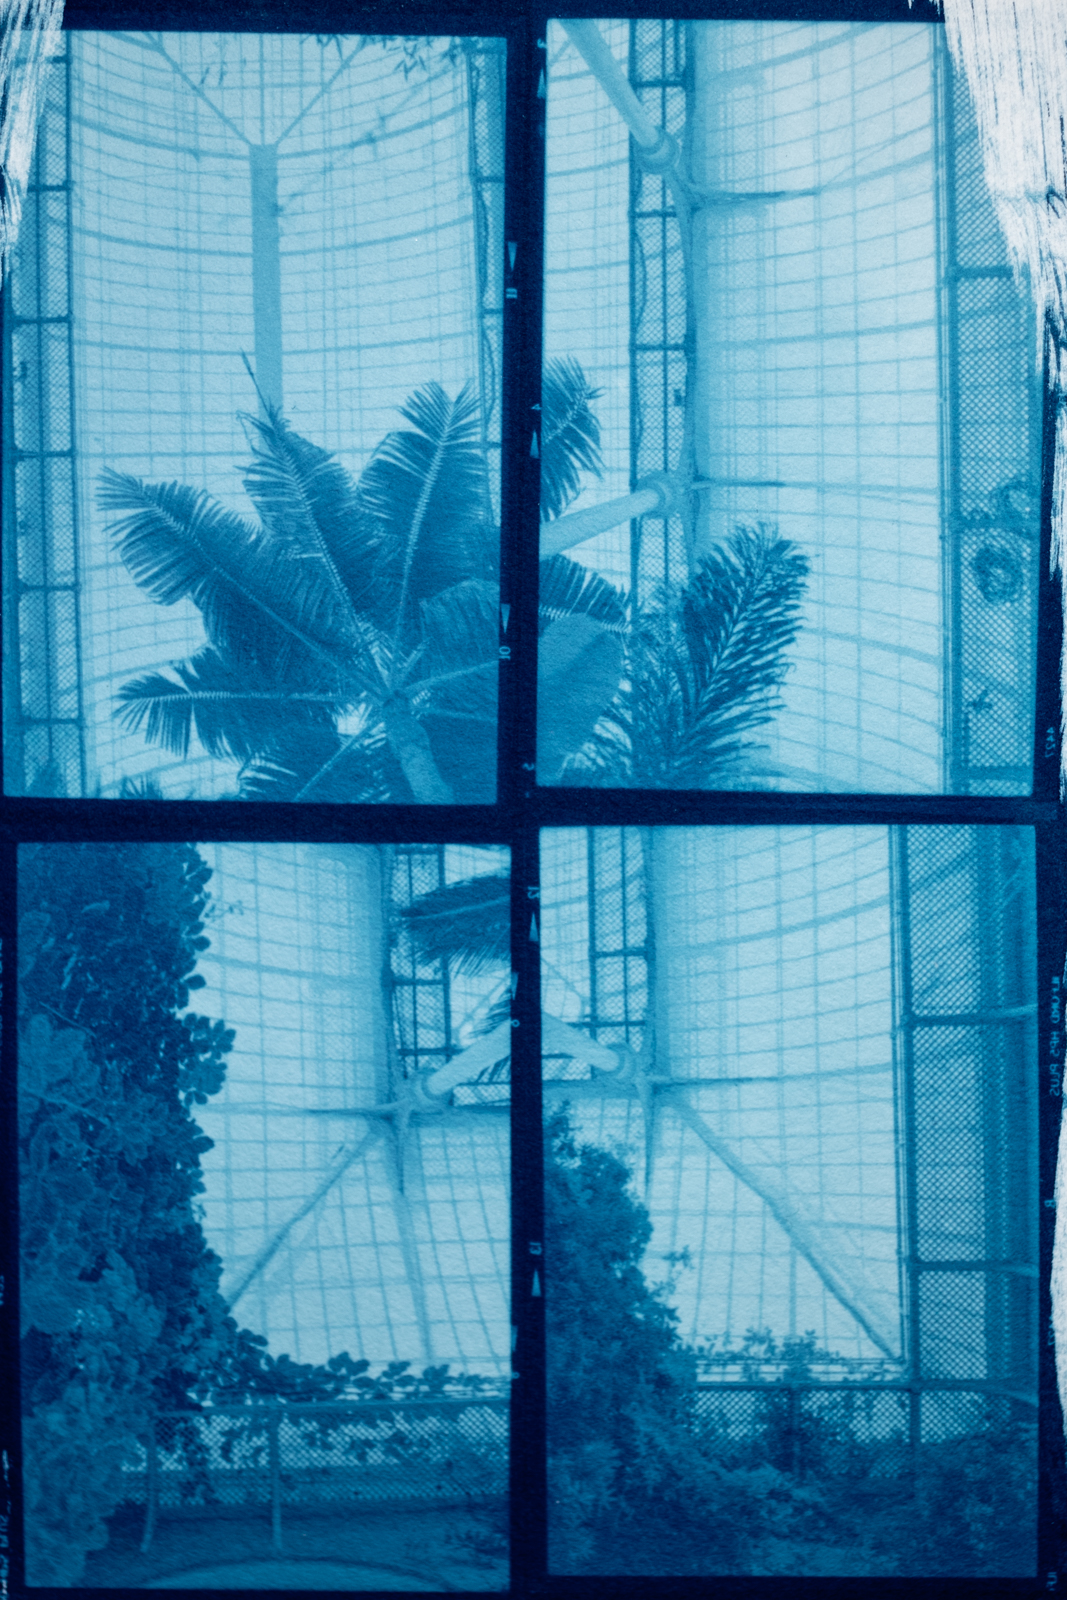 4-Cyanotype four